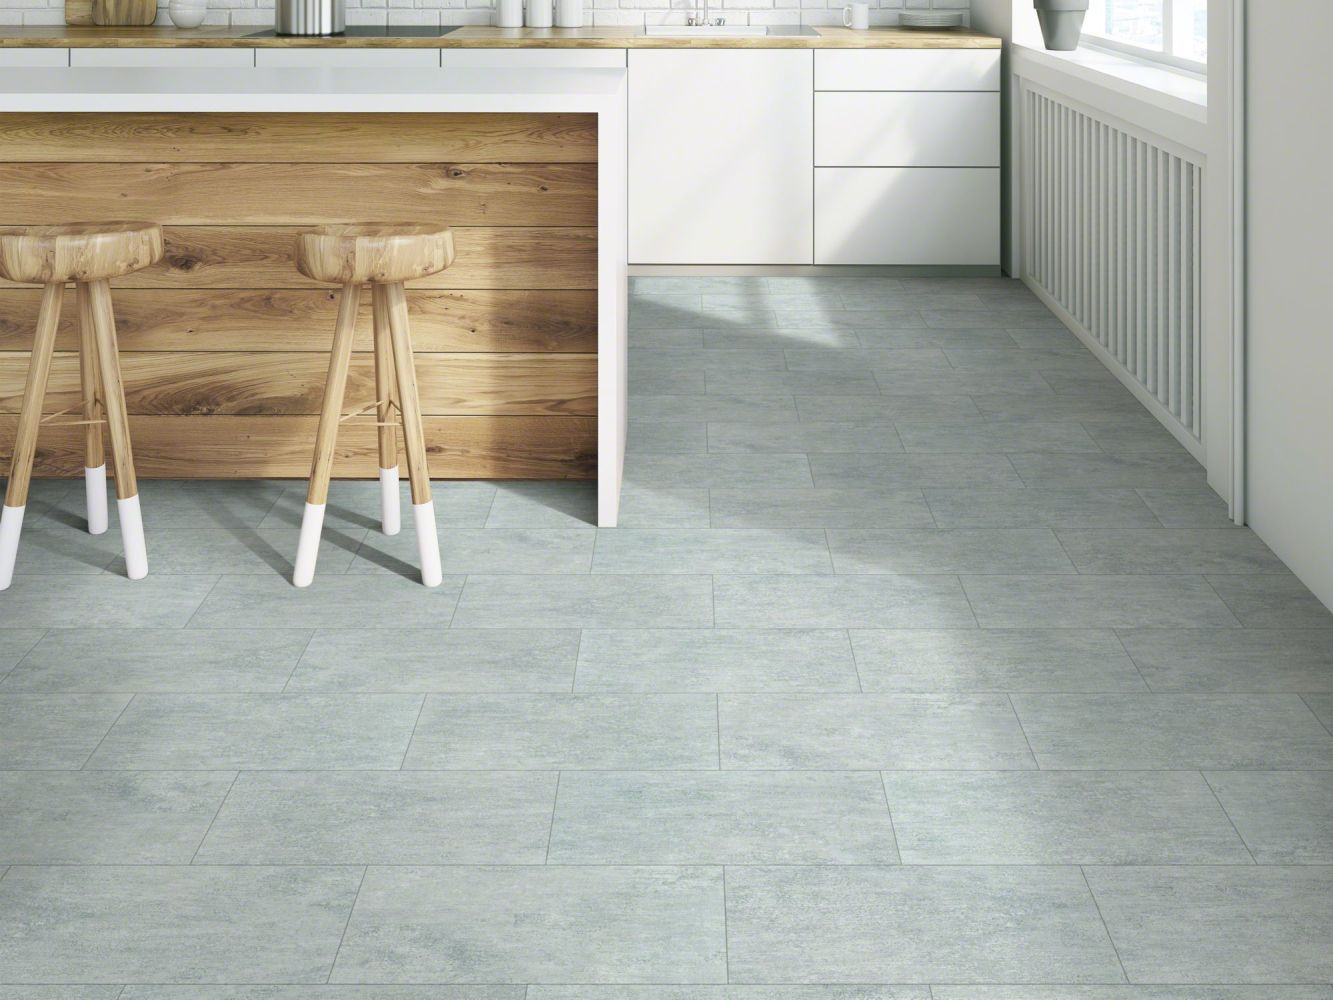 Shaw Floors Vinyl Residential Intrepid Tile Plus Pebble 00599_2026V